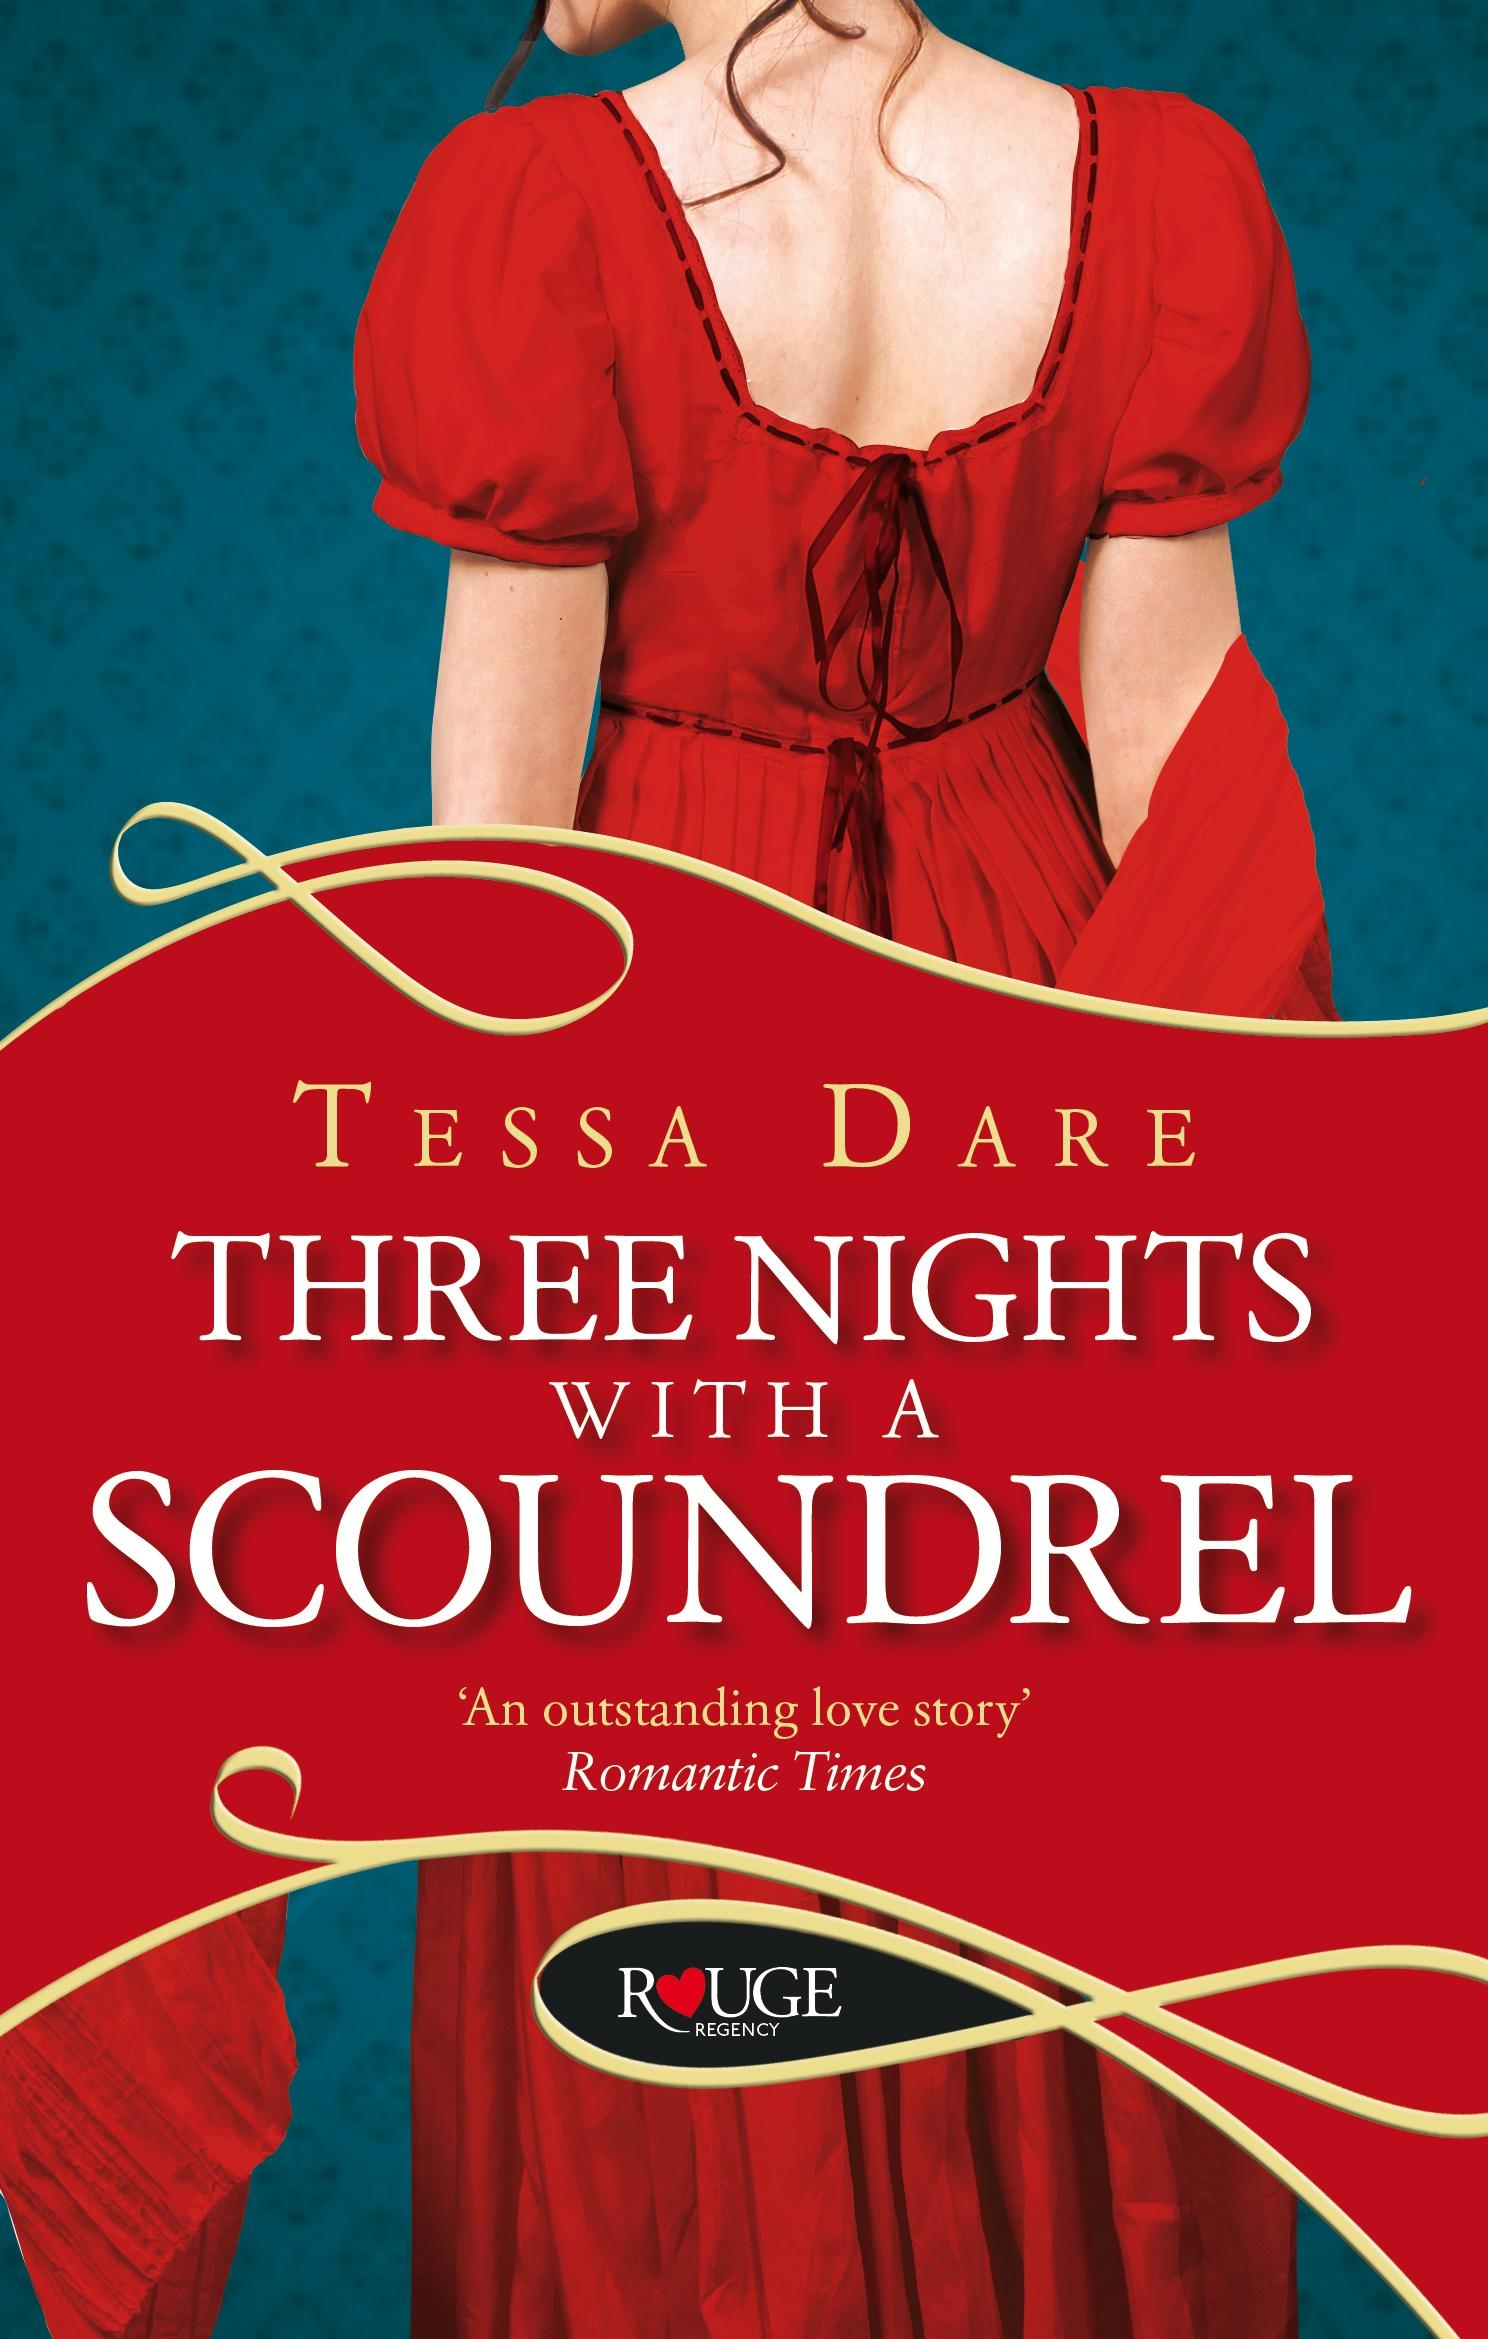 Three Nights With A Scoundrel Rouge Regency Romance By Tessa Dare